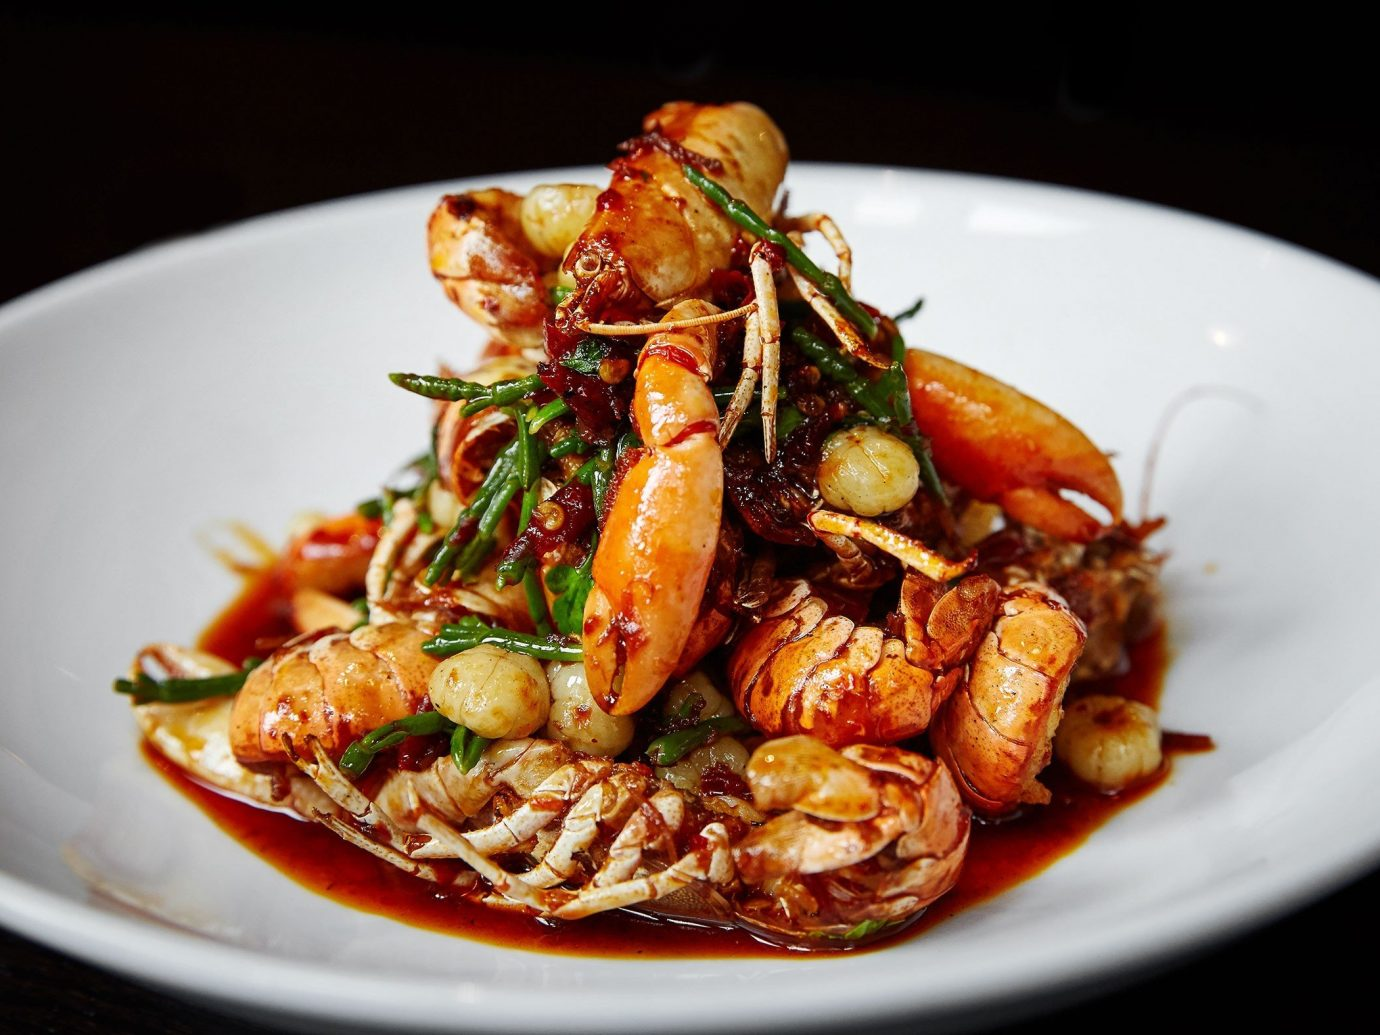 Food + Drink plate food dish arthropod white cuisine vegetable asian food Seafood shrimp thai food produce meal meat chinese food southeast asian food dinner containing prawn